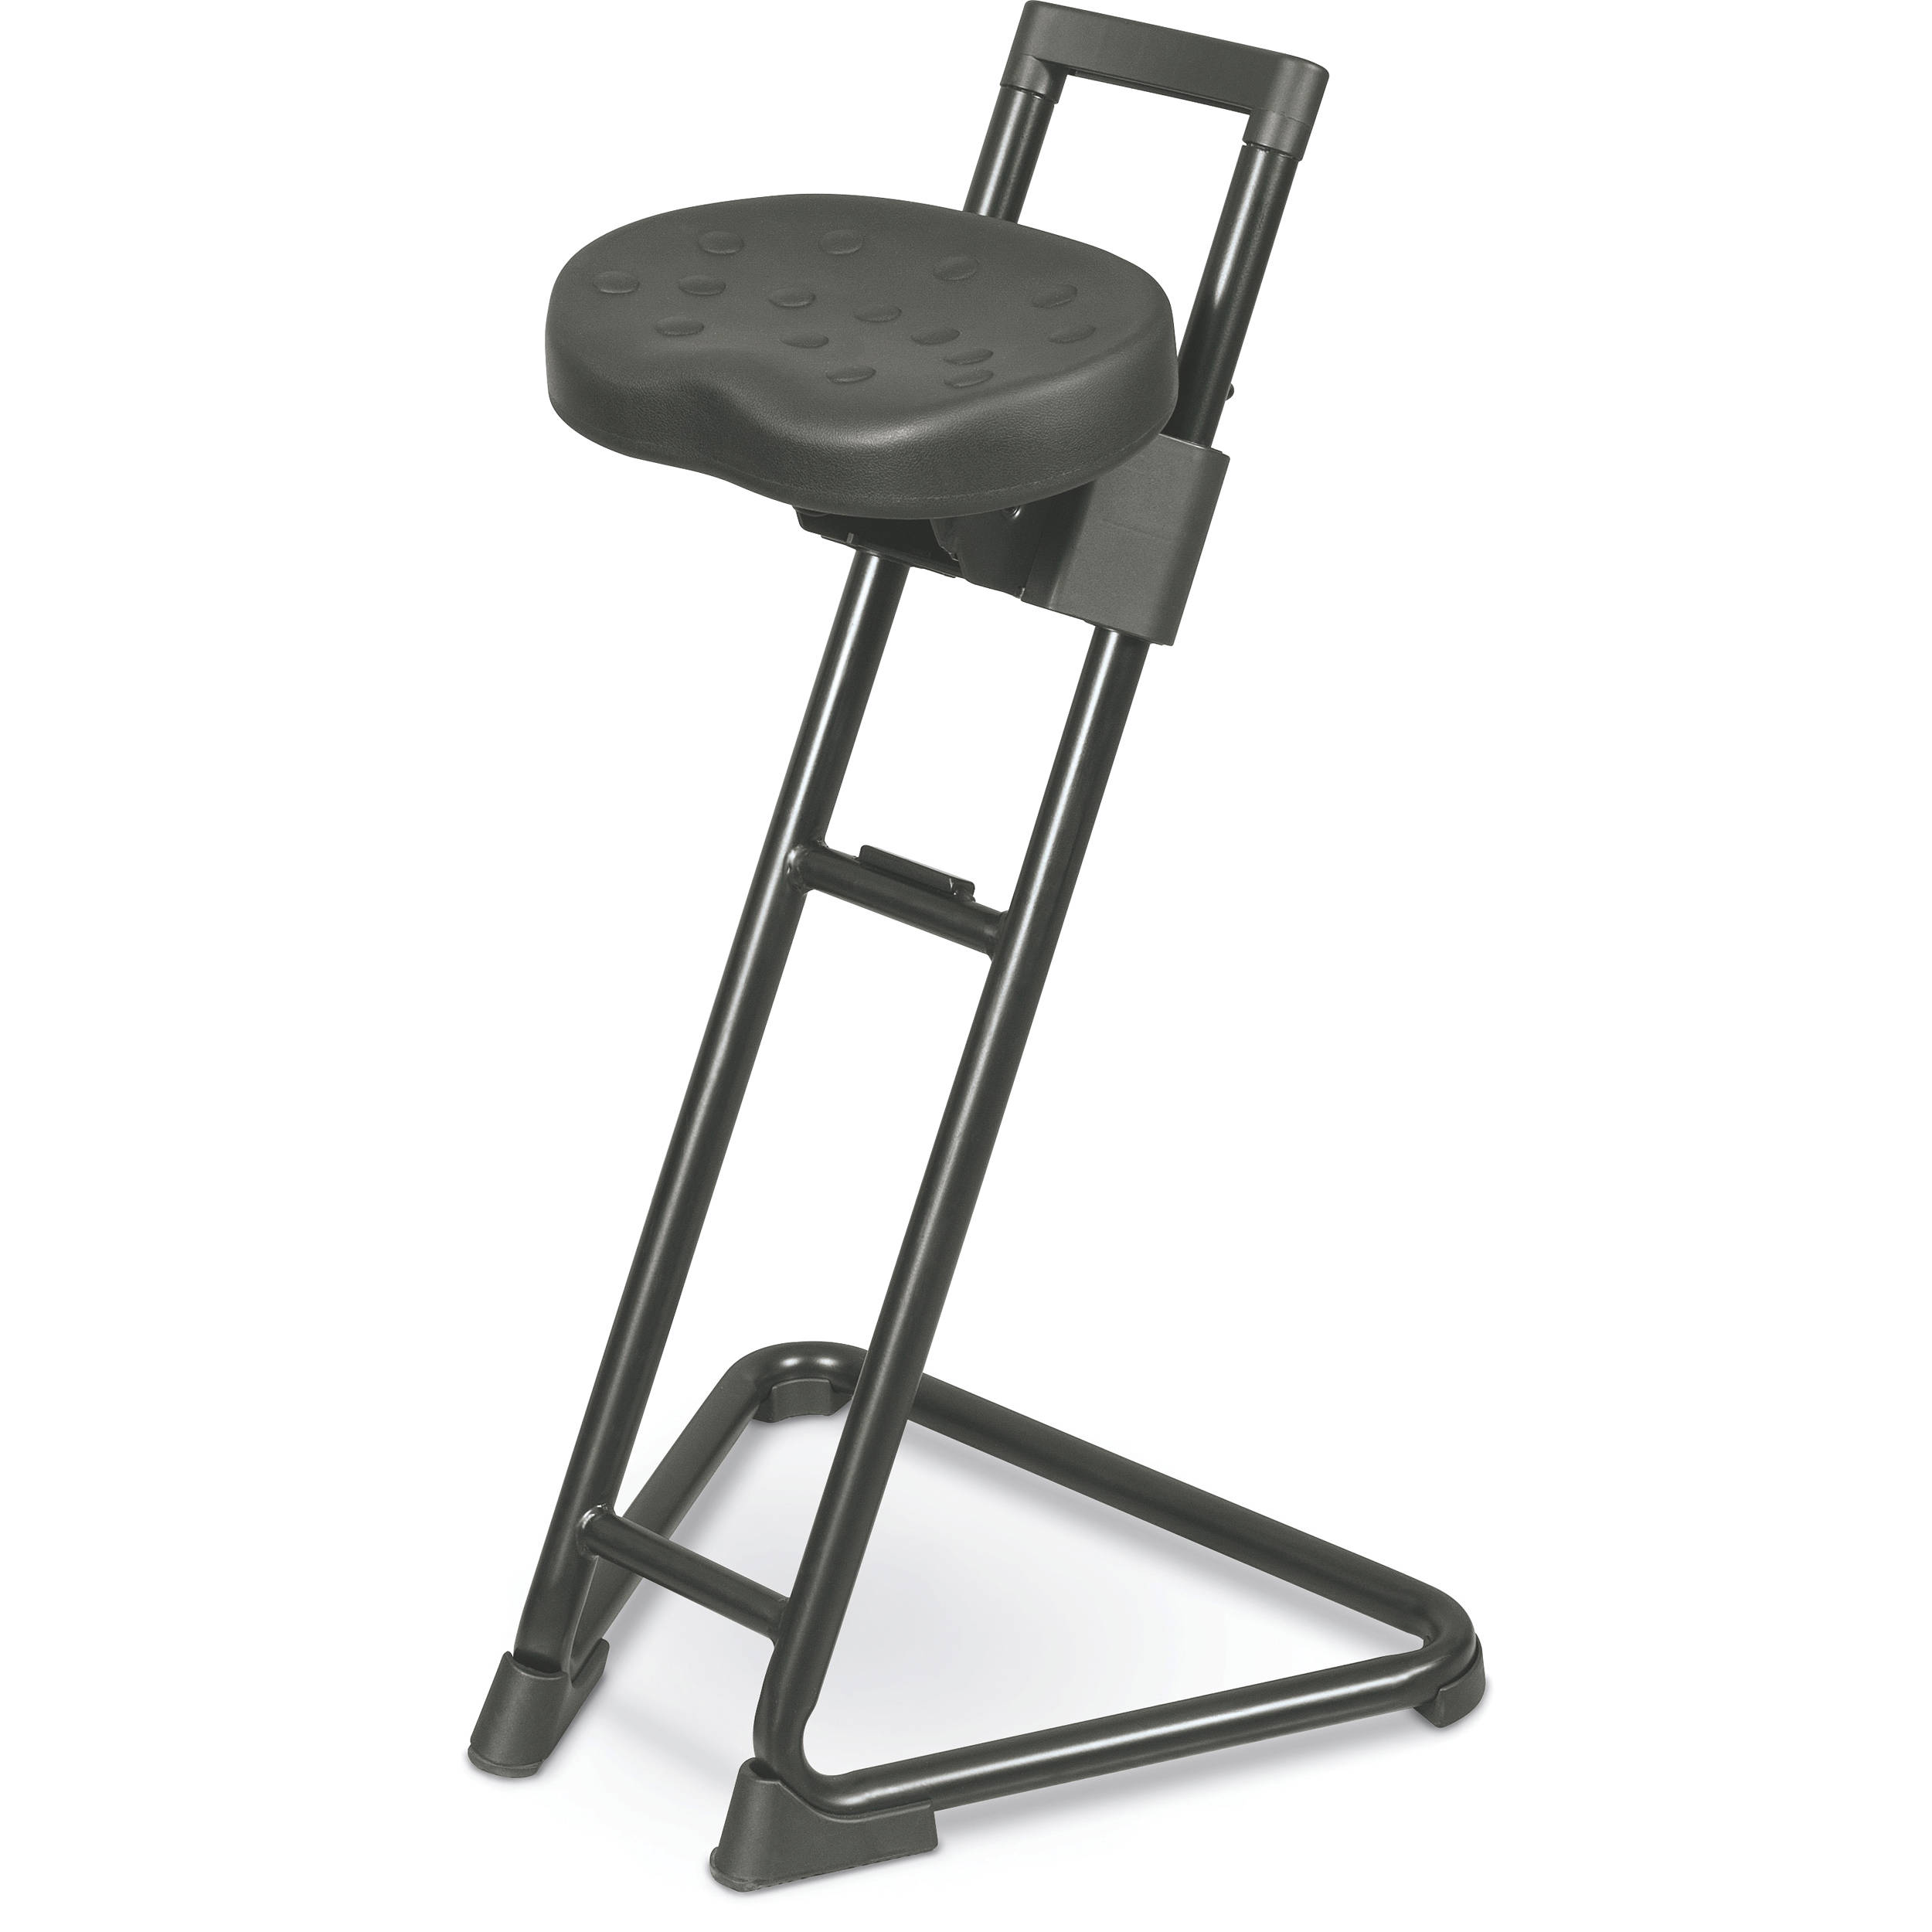 Charmant Balt 34797 Up Rite Height Adjustable Stool